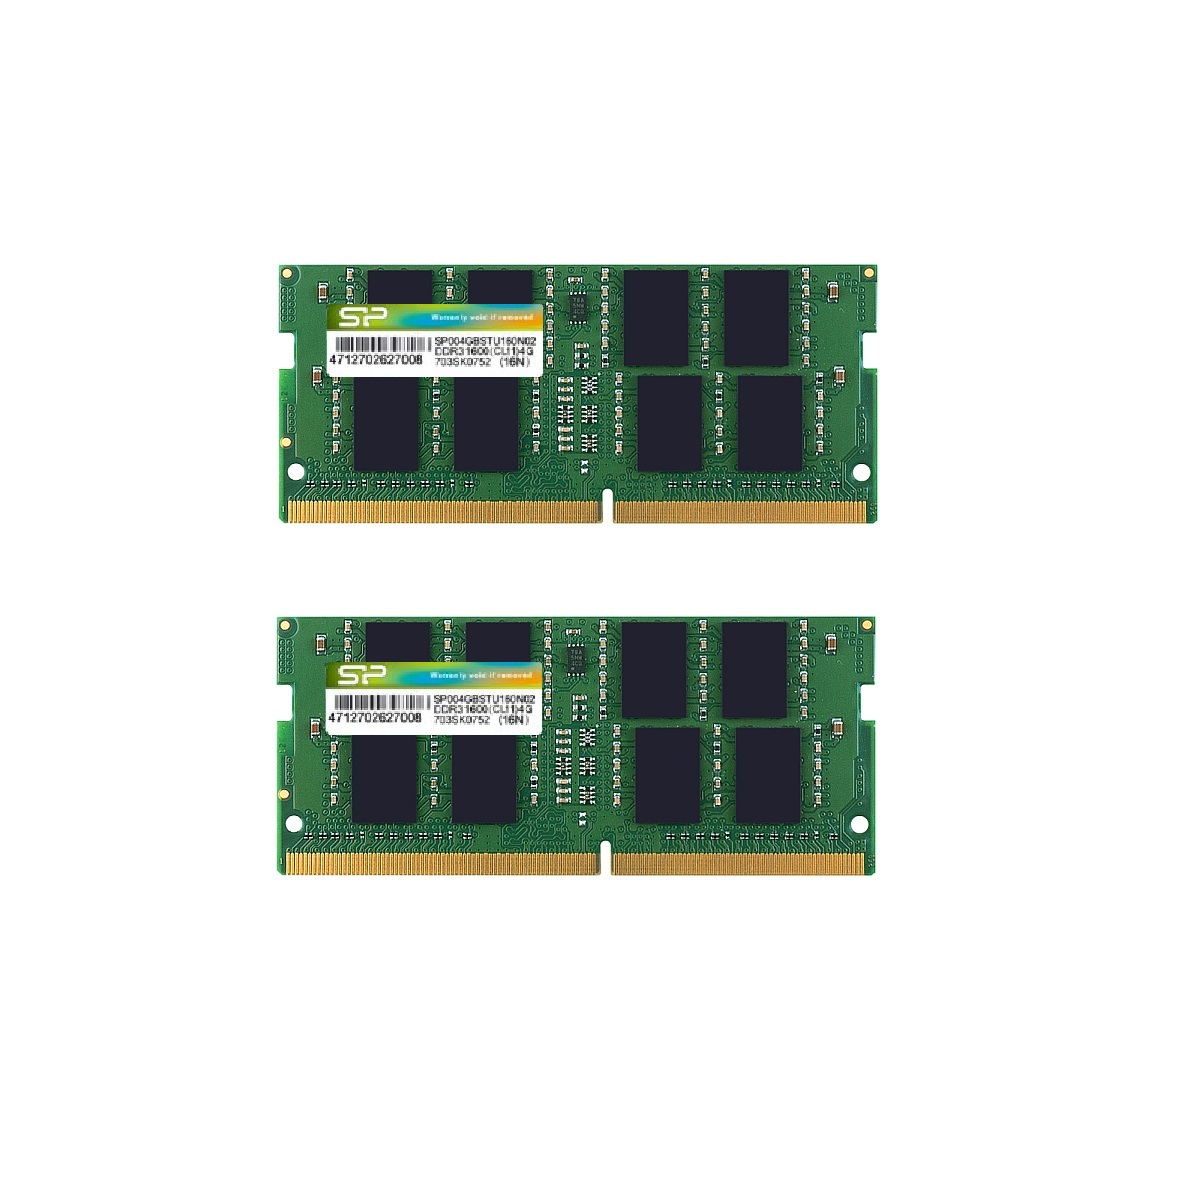 Memory Modules DDR4 260-PIN SO-DIMM_Dual Channel Kit